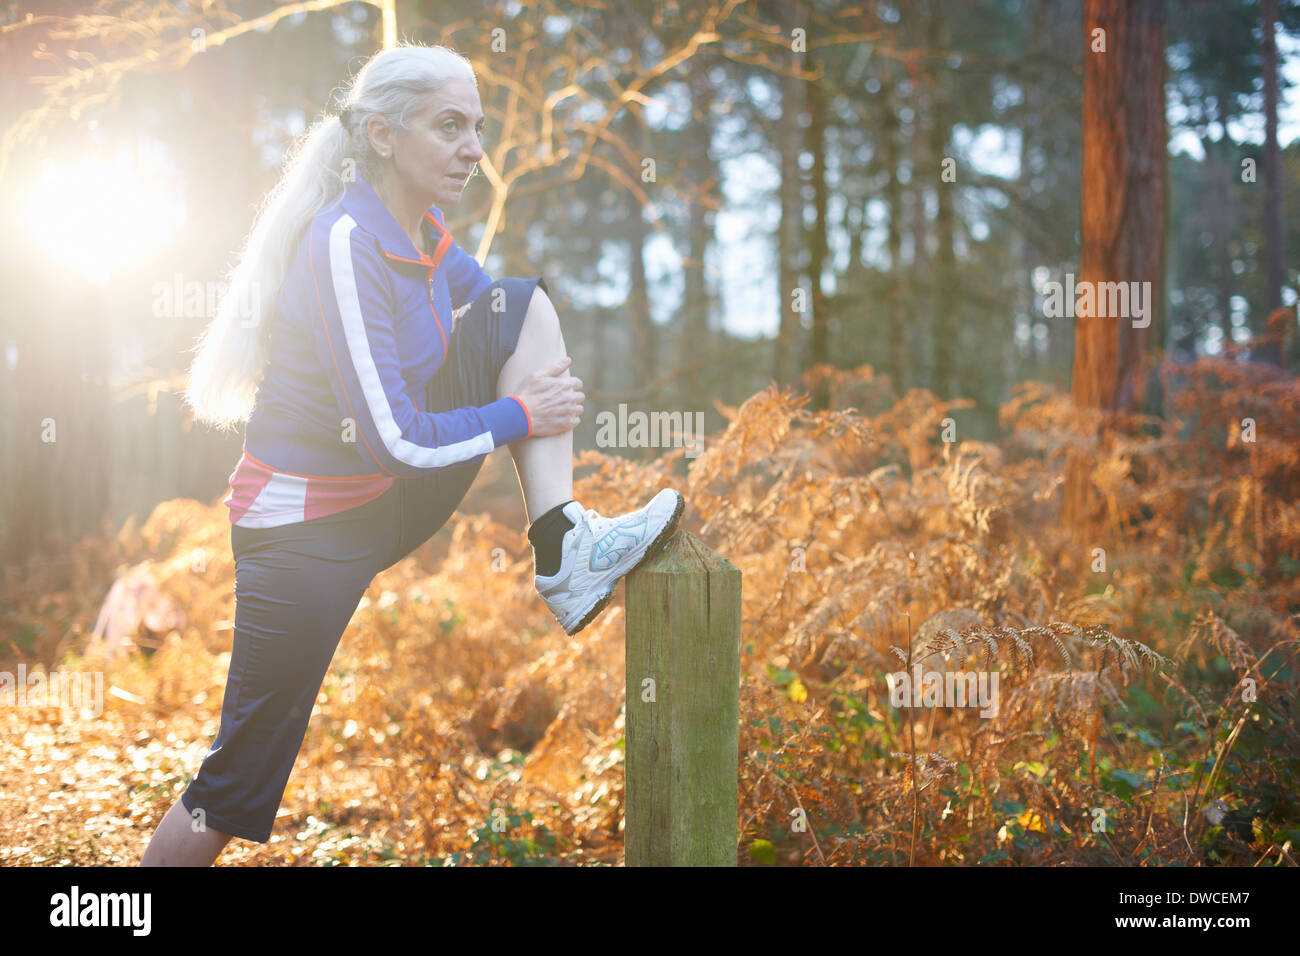 Mature woman stretching leg on wooden post - Stock Image